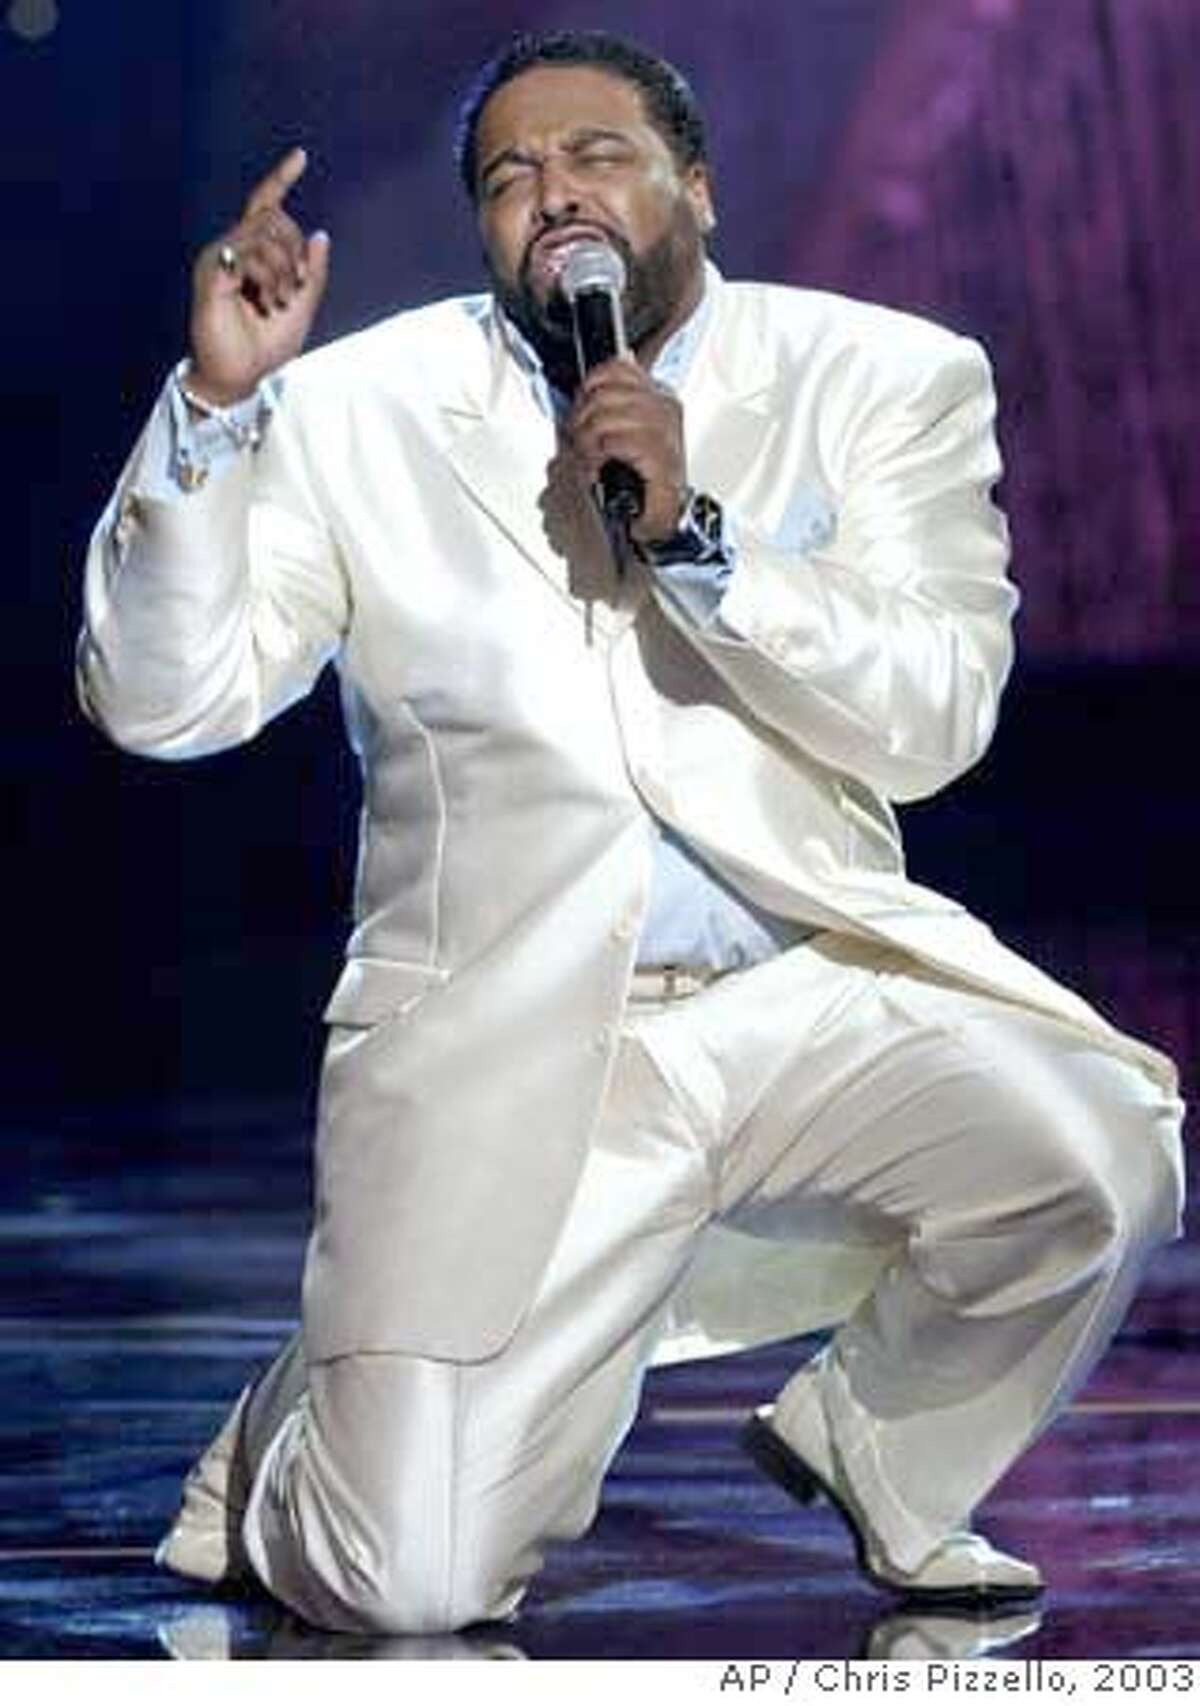 ** FILE **Gerald Levert performs during the 17th Annual Soul Train Music Awards in Pasadena, Calif., in this March 1, 2003, file photo. Levert, the fiery singer of passionate R&B love songs and the son of O'Jays singer Eddie Levert, died on Friday. He was 40. (AP Photo/Chris Pizzello/FILE) Ran on: 11-11-2006 Gerald Levert, performing at the 17th annual Soul Train Music Awards in Pasadena, was the son of OJays singer Eddie Levert. A MARCH 1, 2003 FILE PHOTO